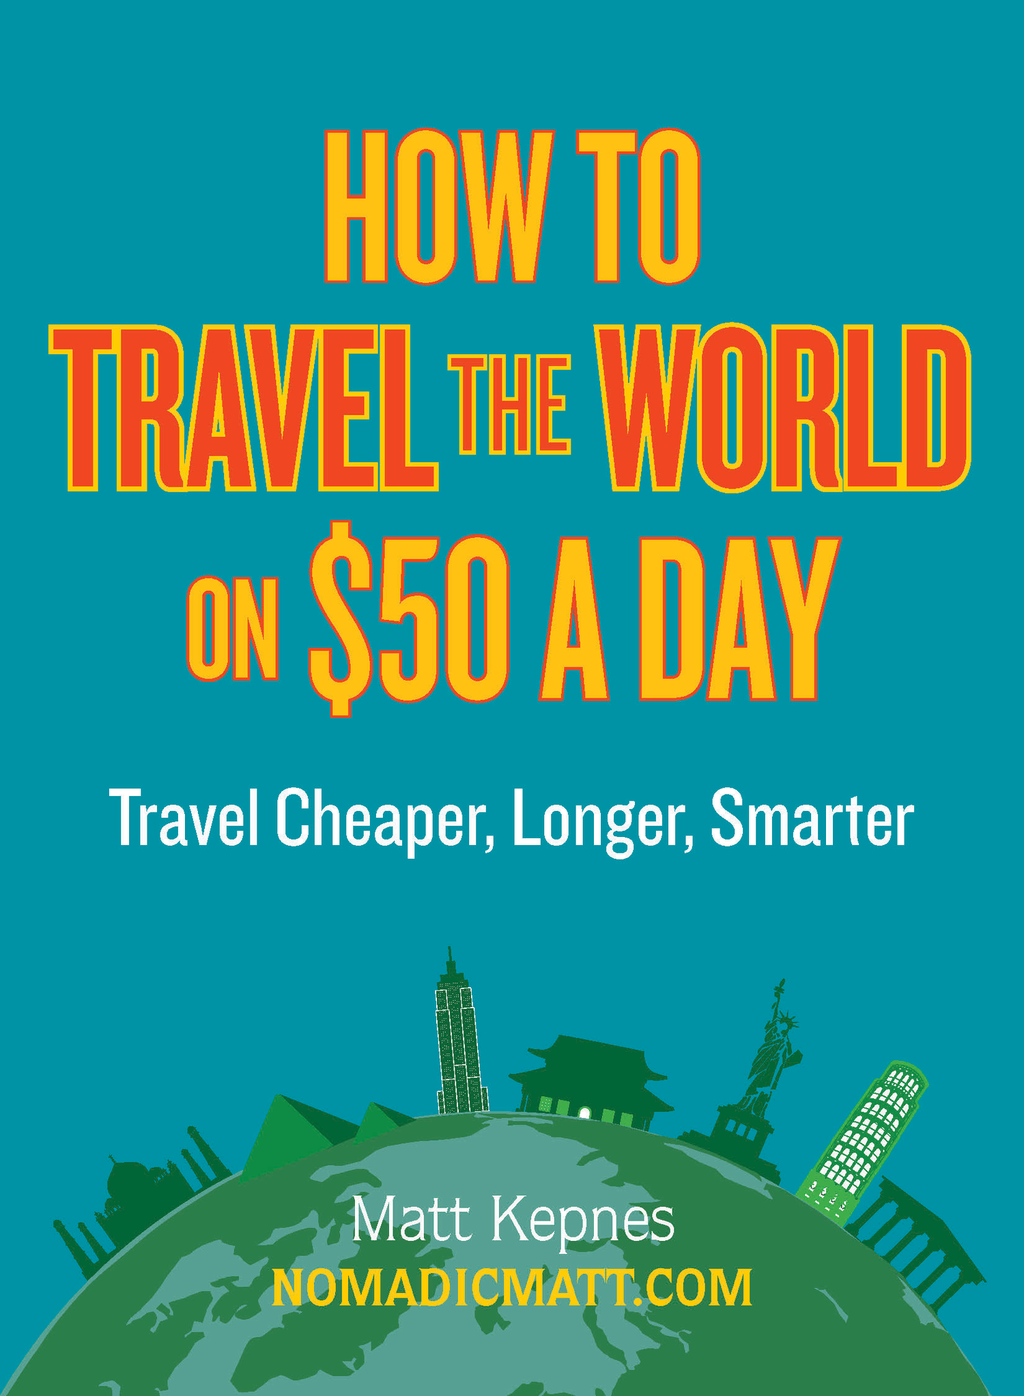 How to Travel the World on $50 a Day By: Matt Kepnes